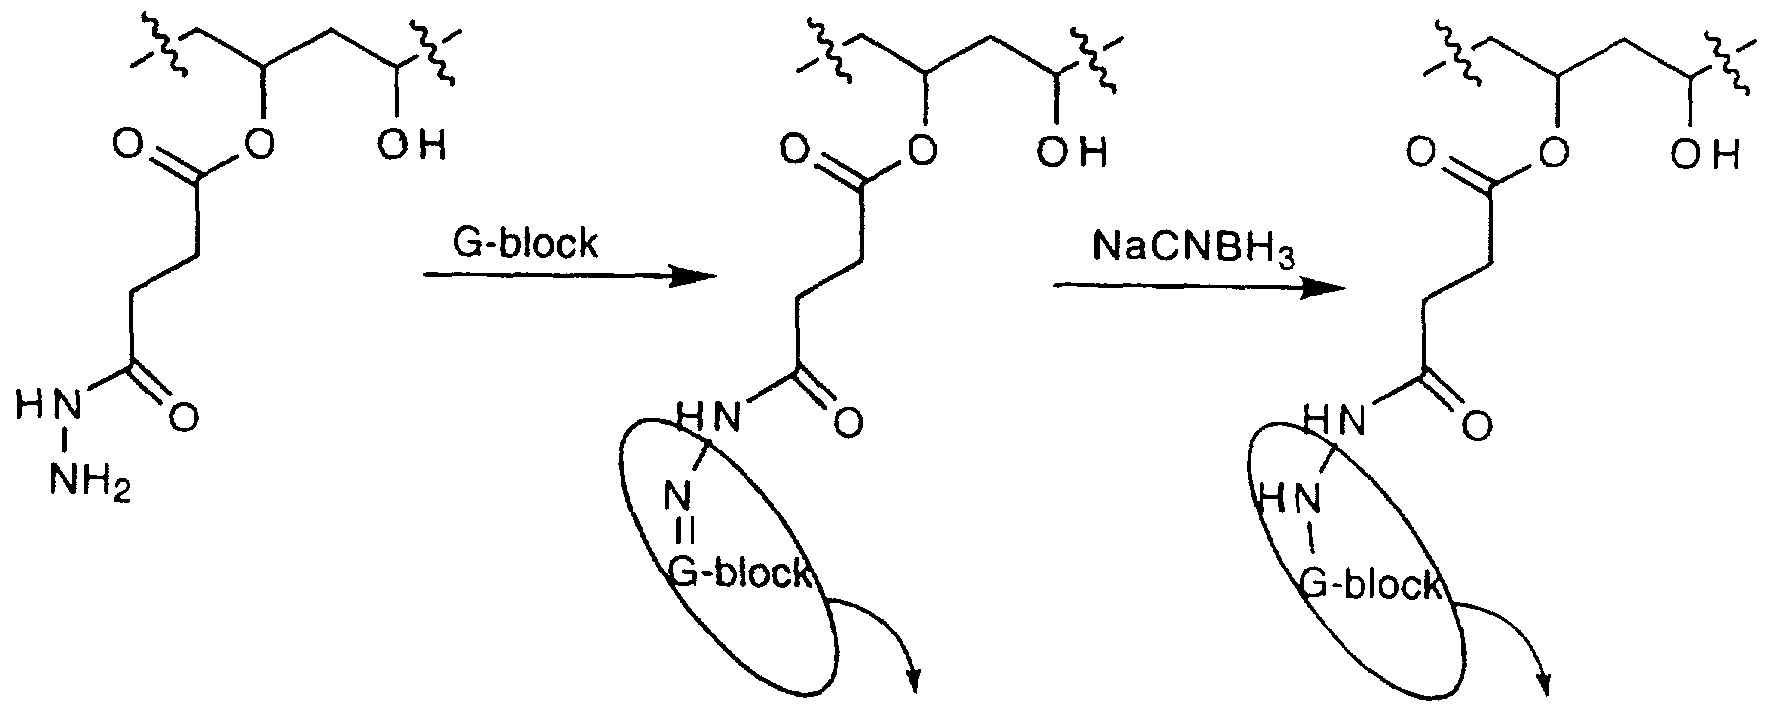 relationship between monomers and polymers using polysaccharides as an example